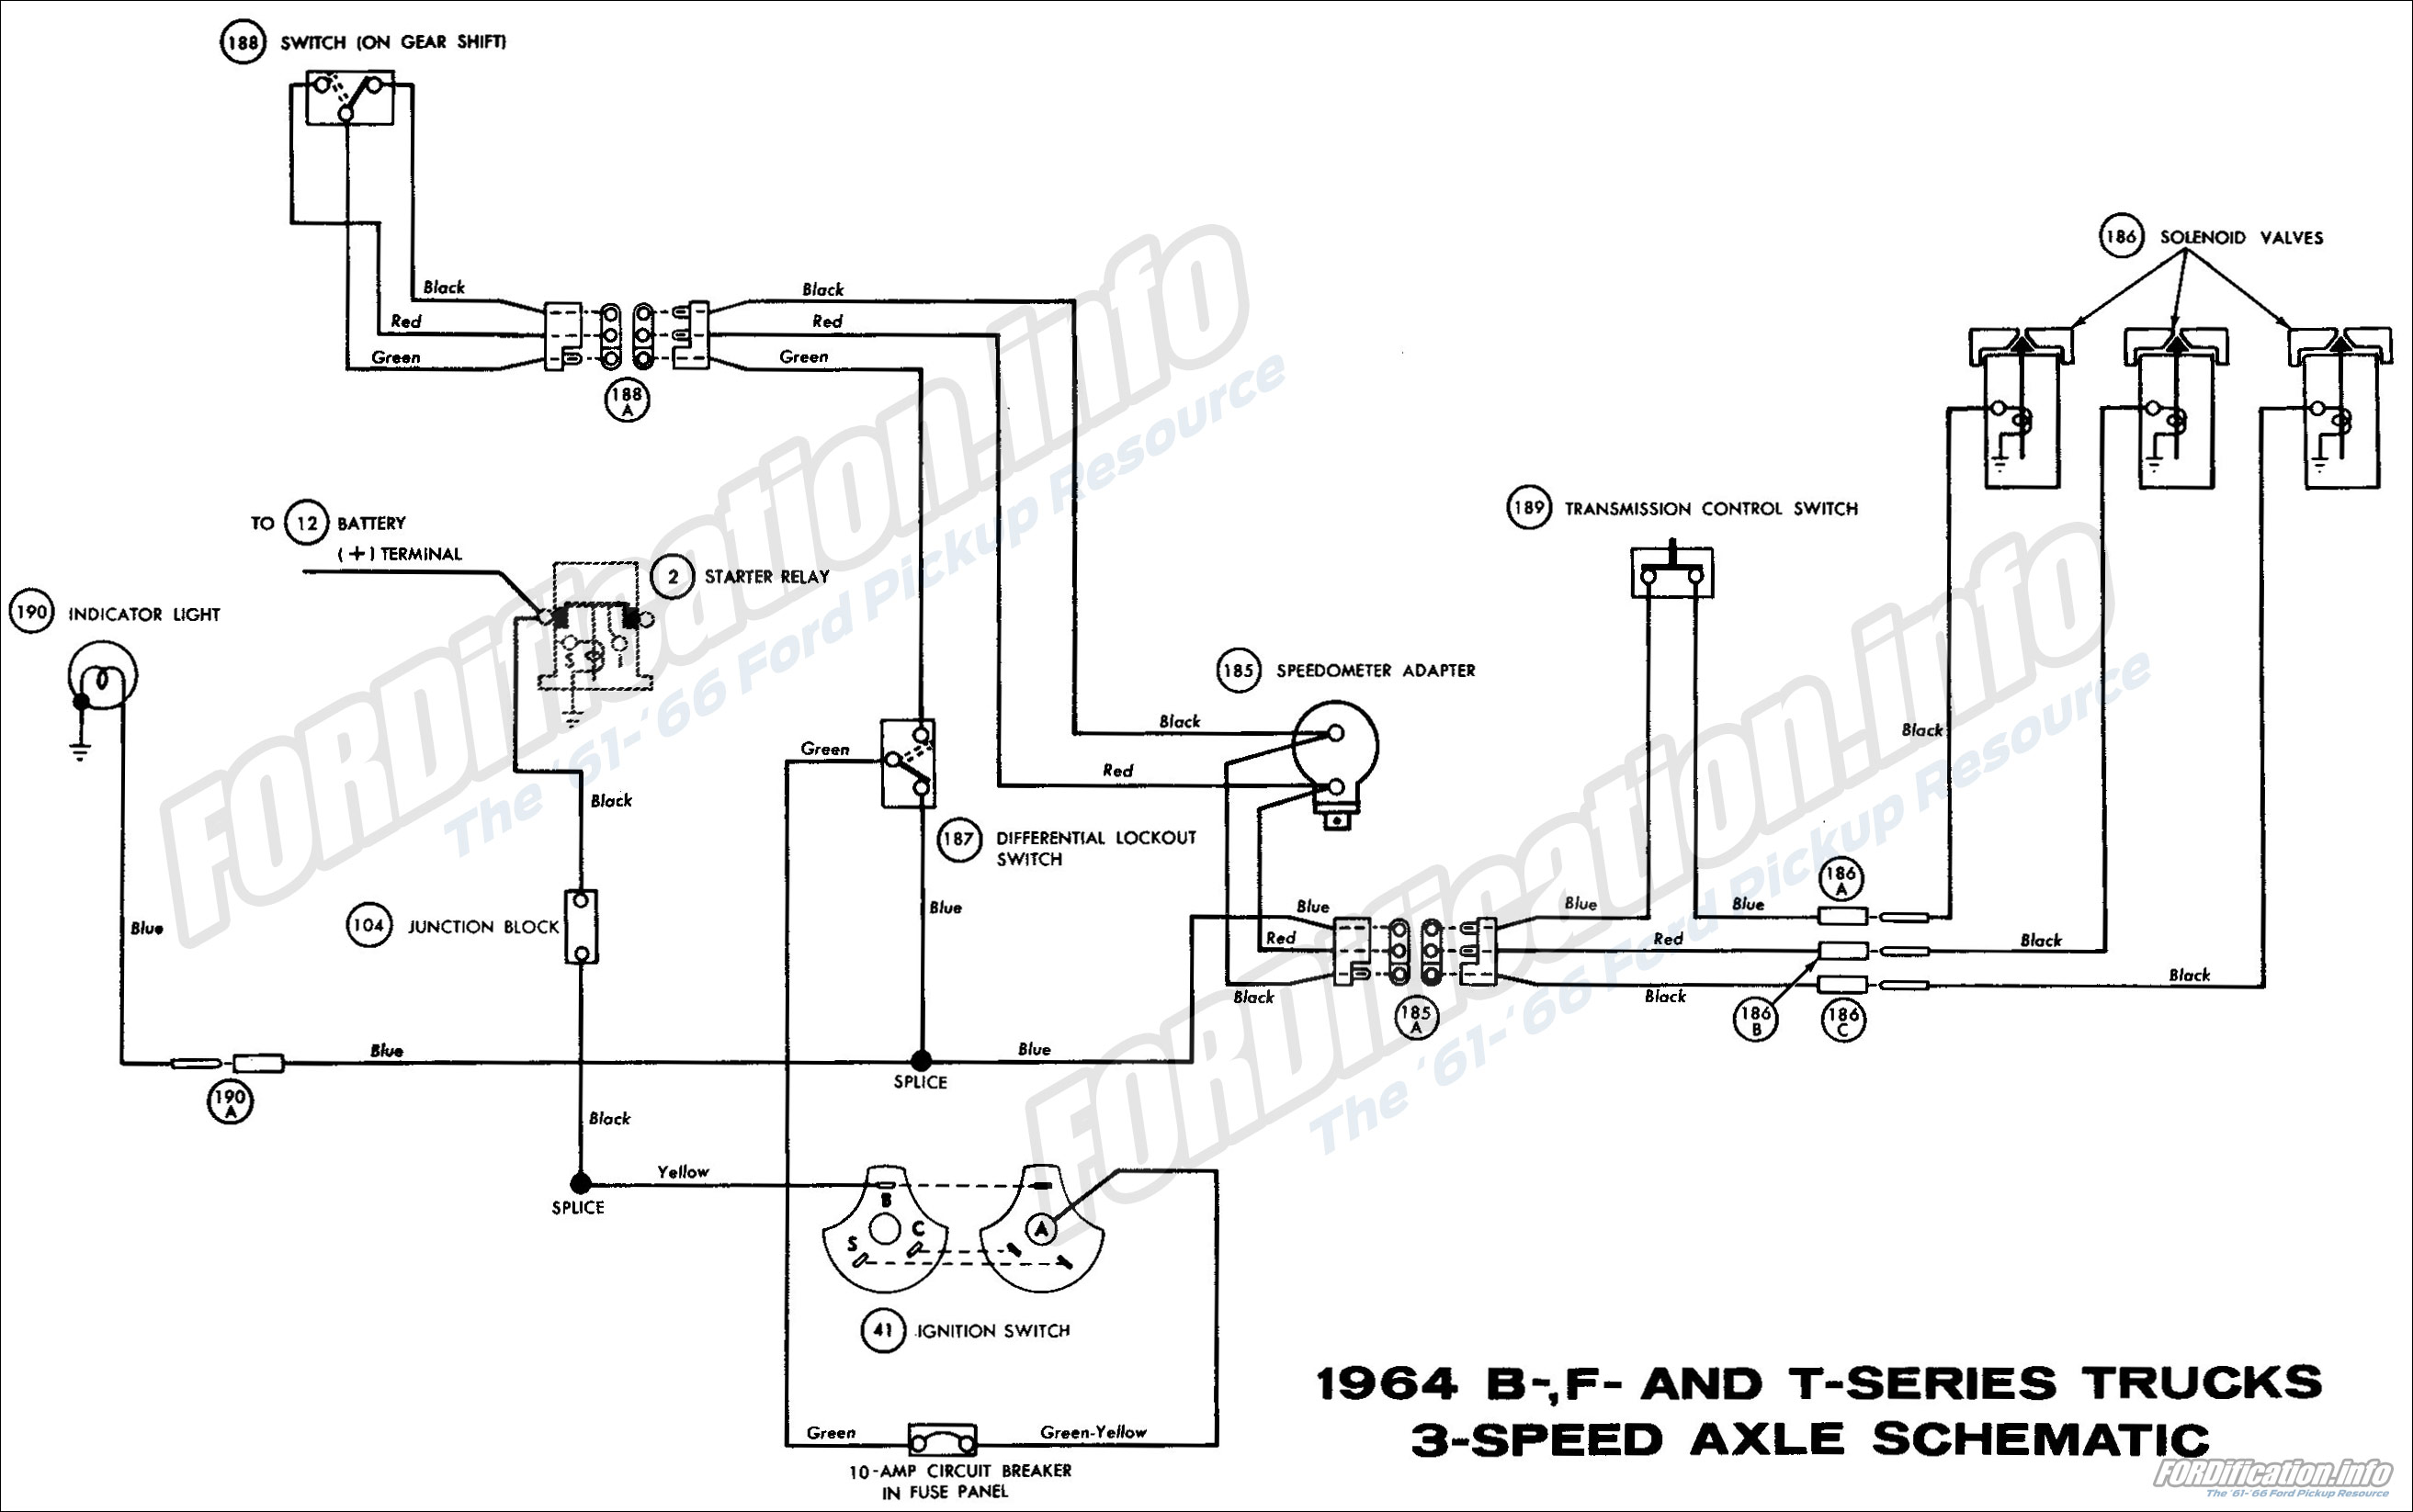 33 Eaton 2 Speed Axle Wiring Diagram